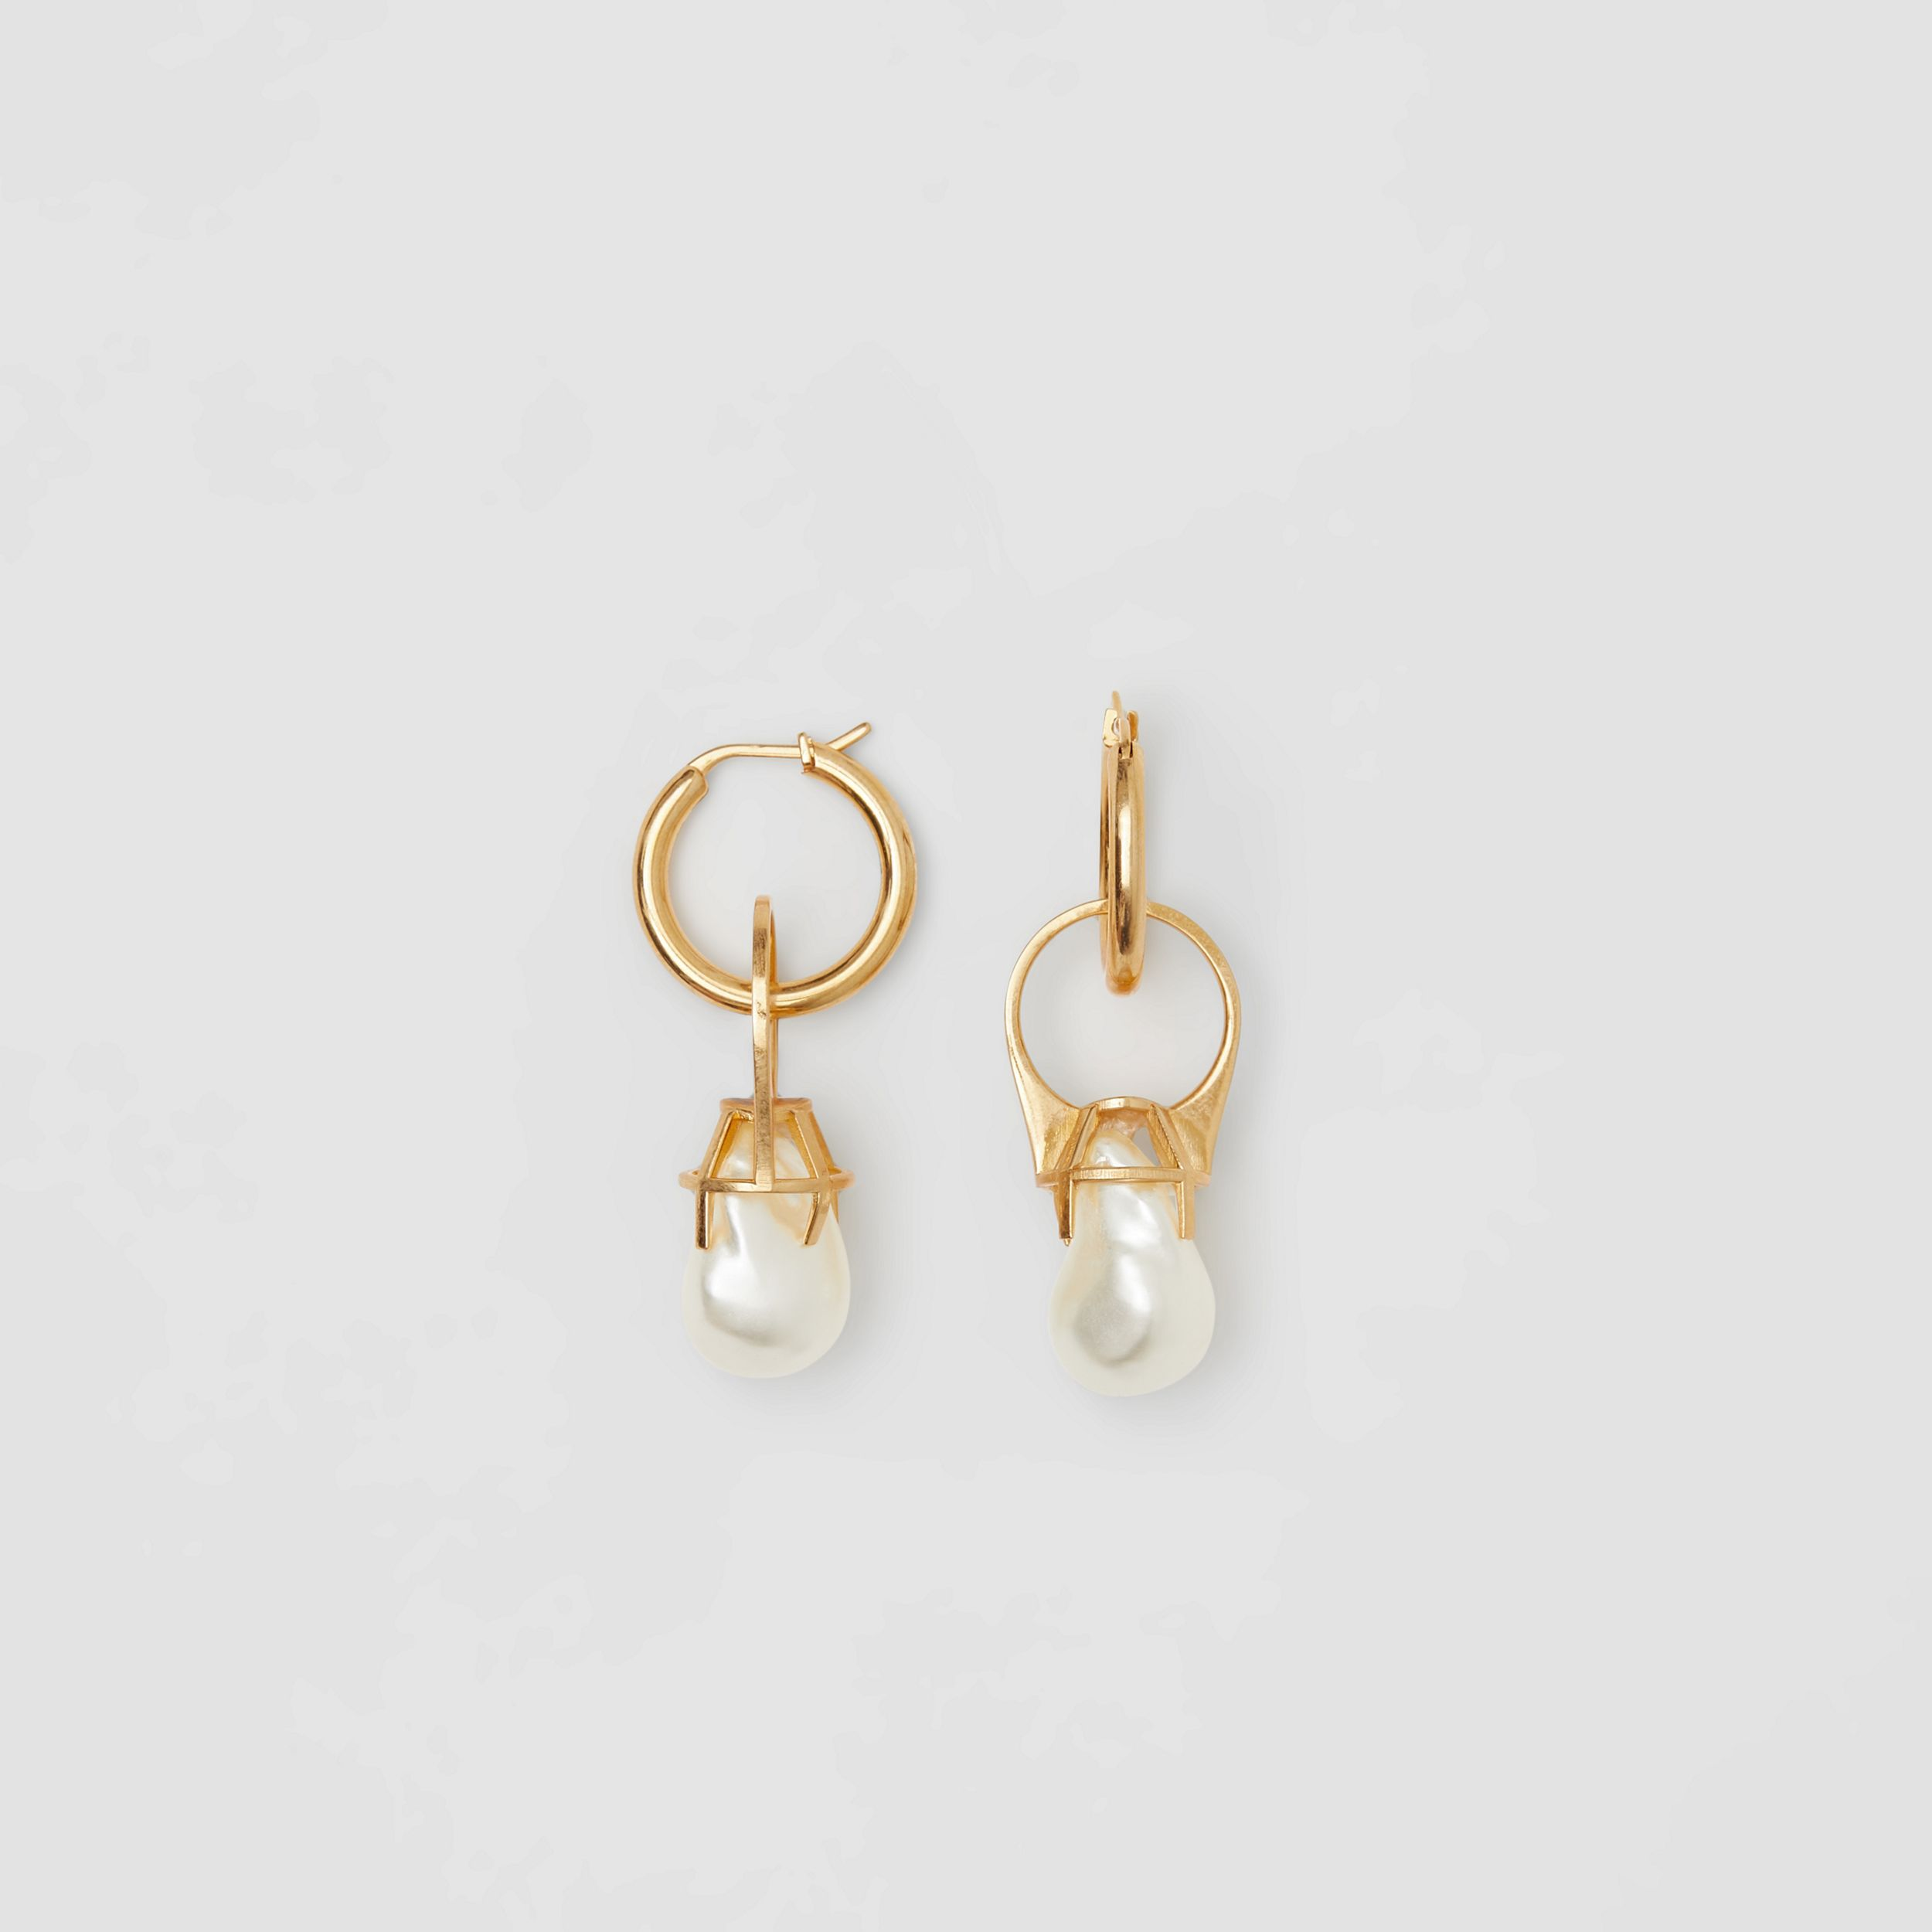 Resin Pearl Ring Gold-plated Hoop Earrings in Light - Women | Burberry United States - 4